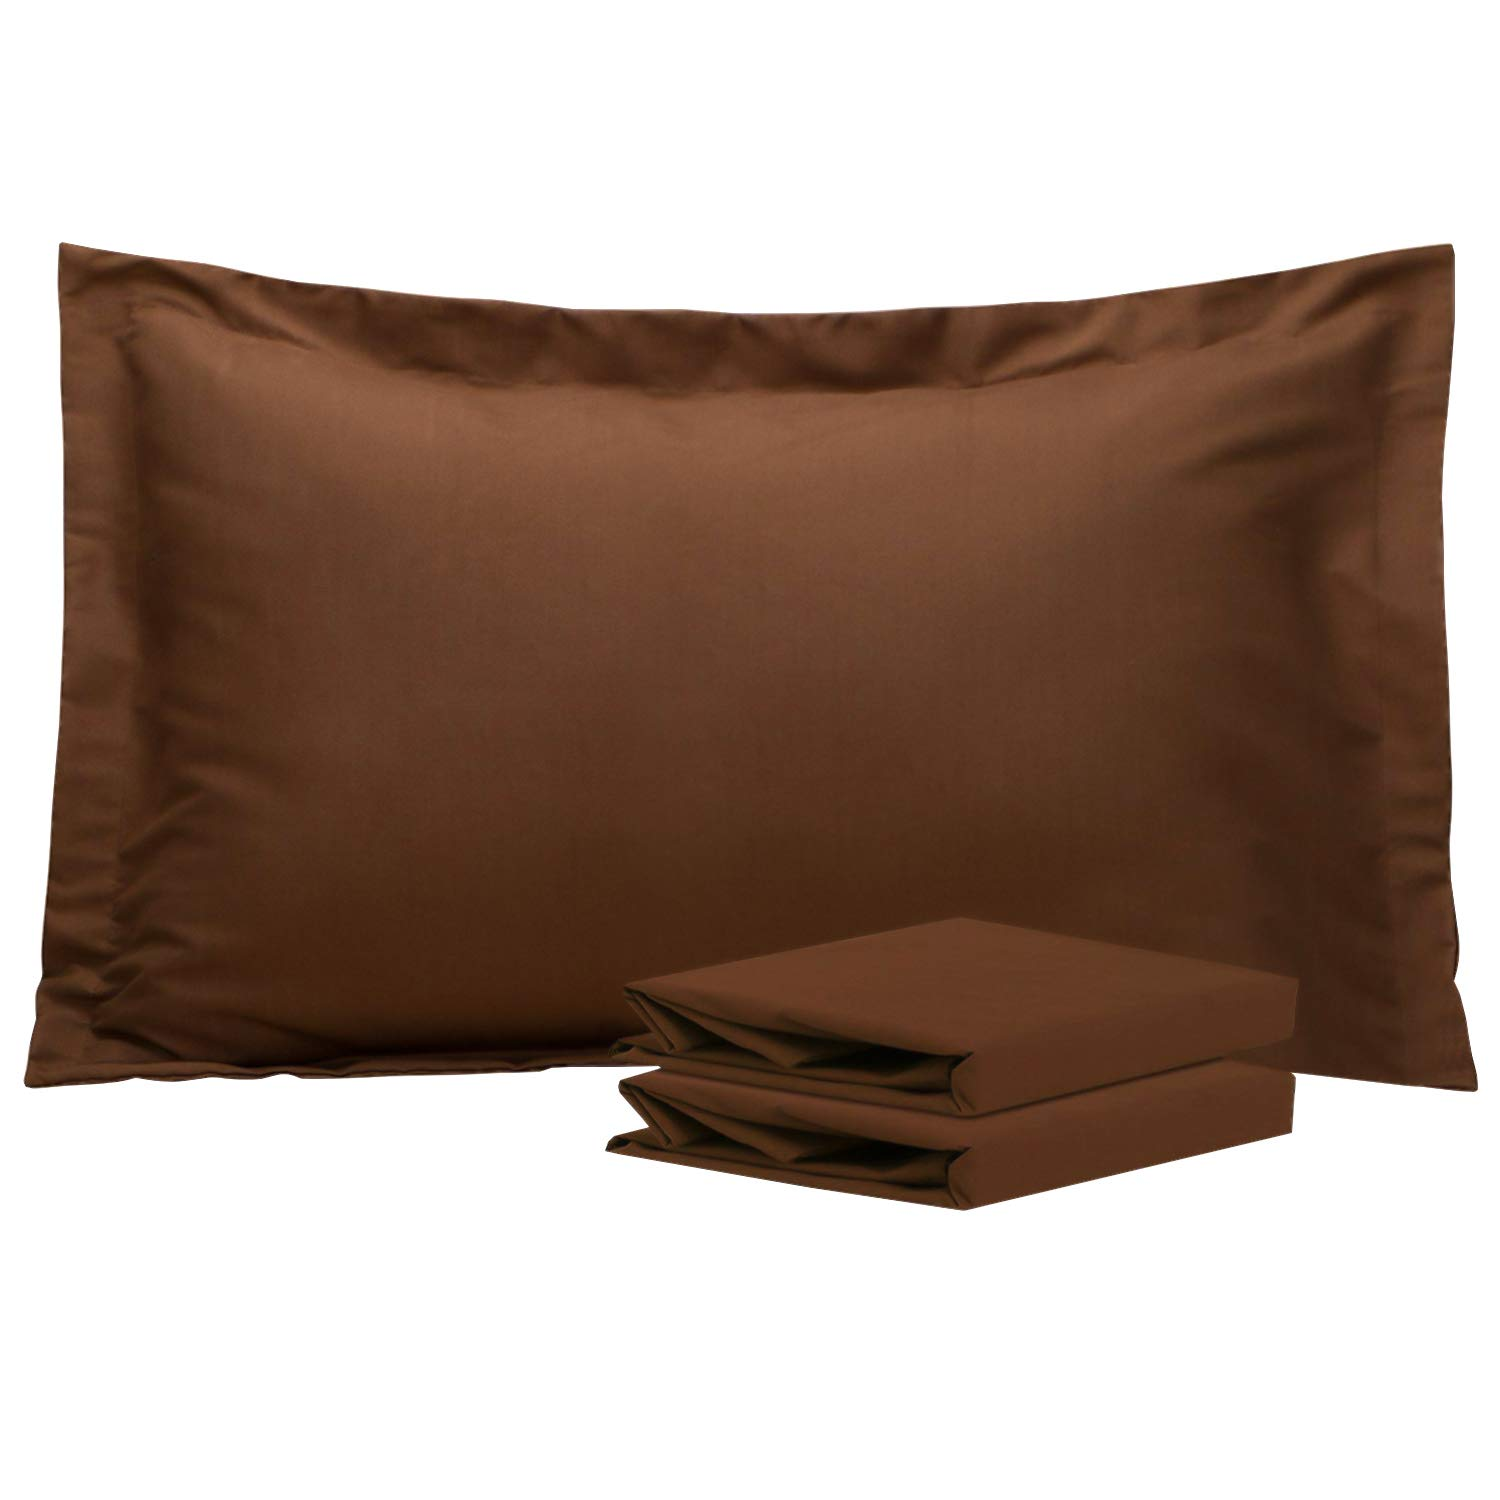 NTBAY King Pillow Shams, Set of 2, 100% Brushed Microfiber, Soft and Cozy, Wrinkle, Fade, Stain Resistant (King, Coffee)